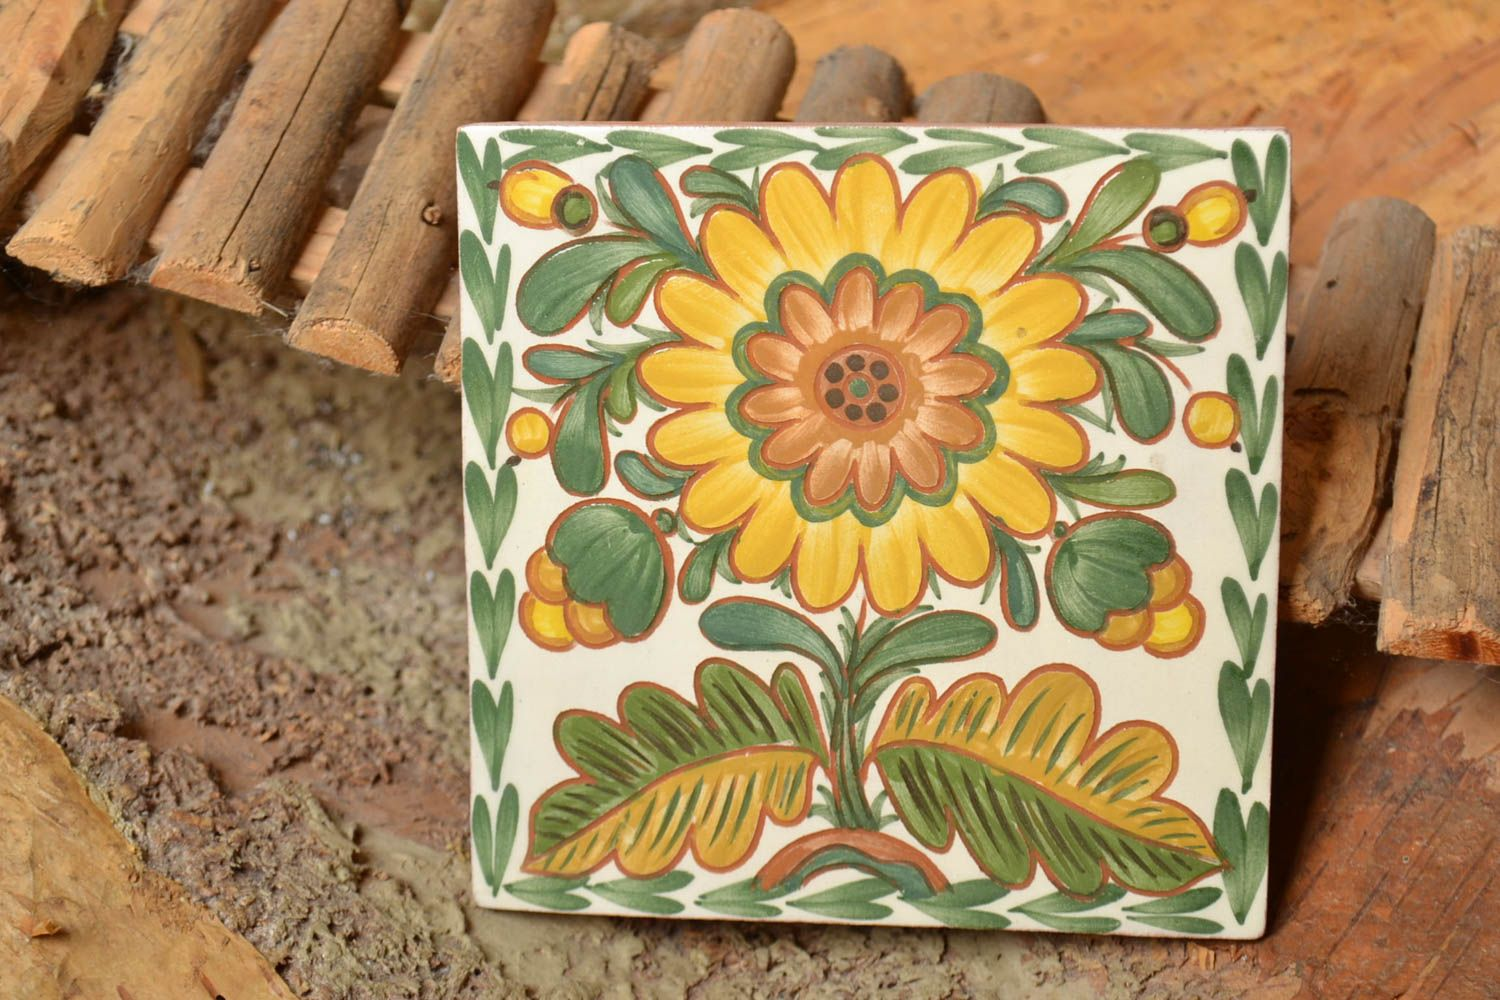 Madeheart handmade decorative ceramic tiles painted with engobes decorative handmade tiles handmade decorative ceramic tiles painted with engobes with flower wall panel madeheart dailygadgetfo Gallery